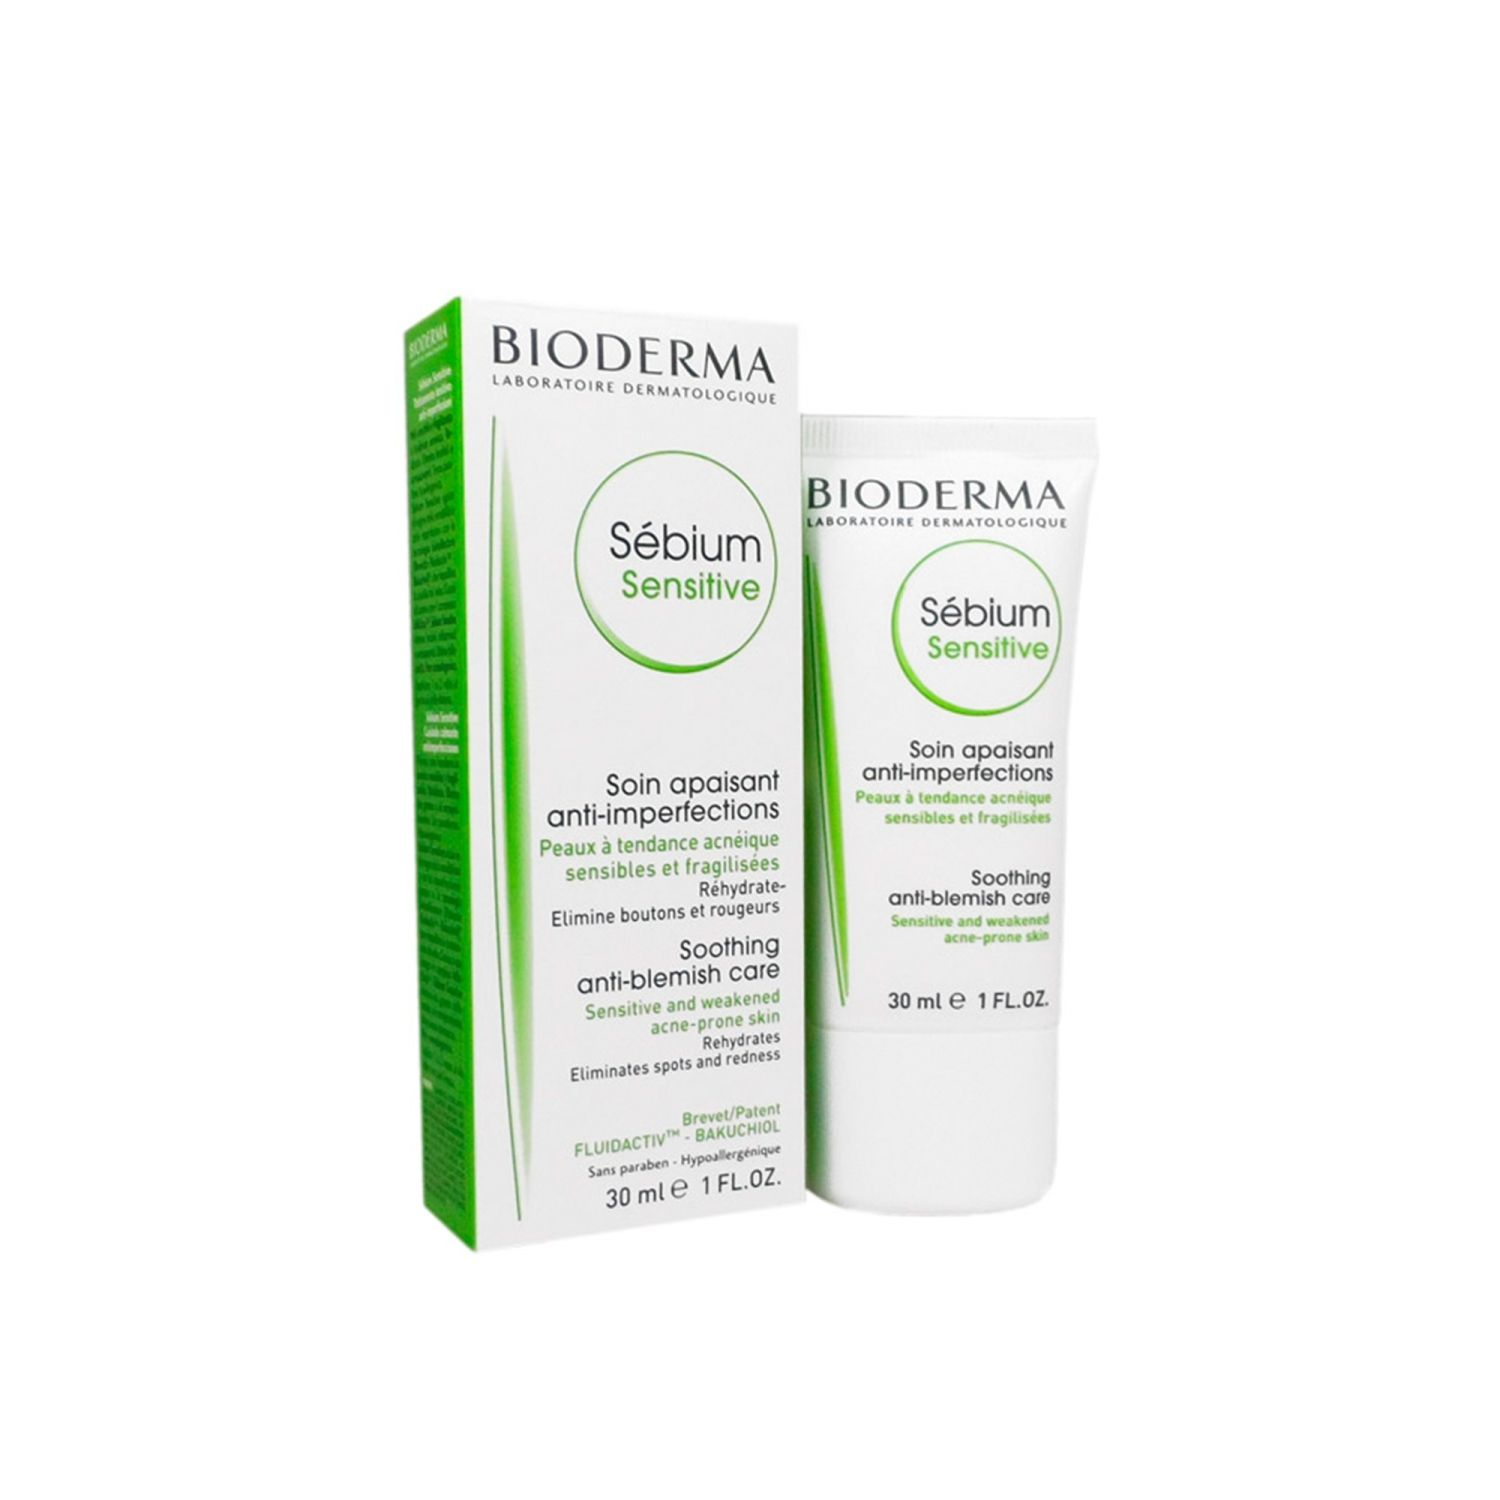 Bioderma Sébium Sensitive Creme 30 mL